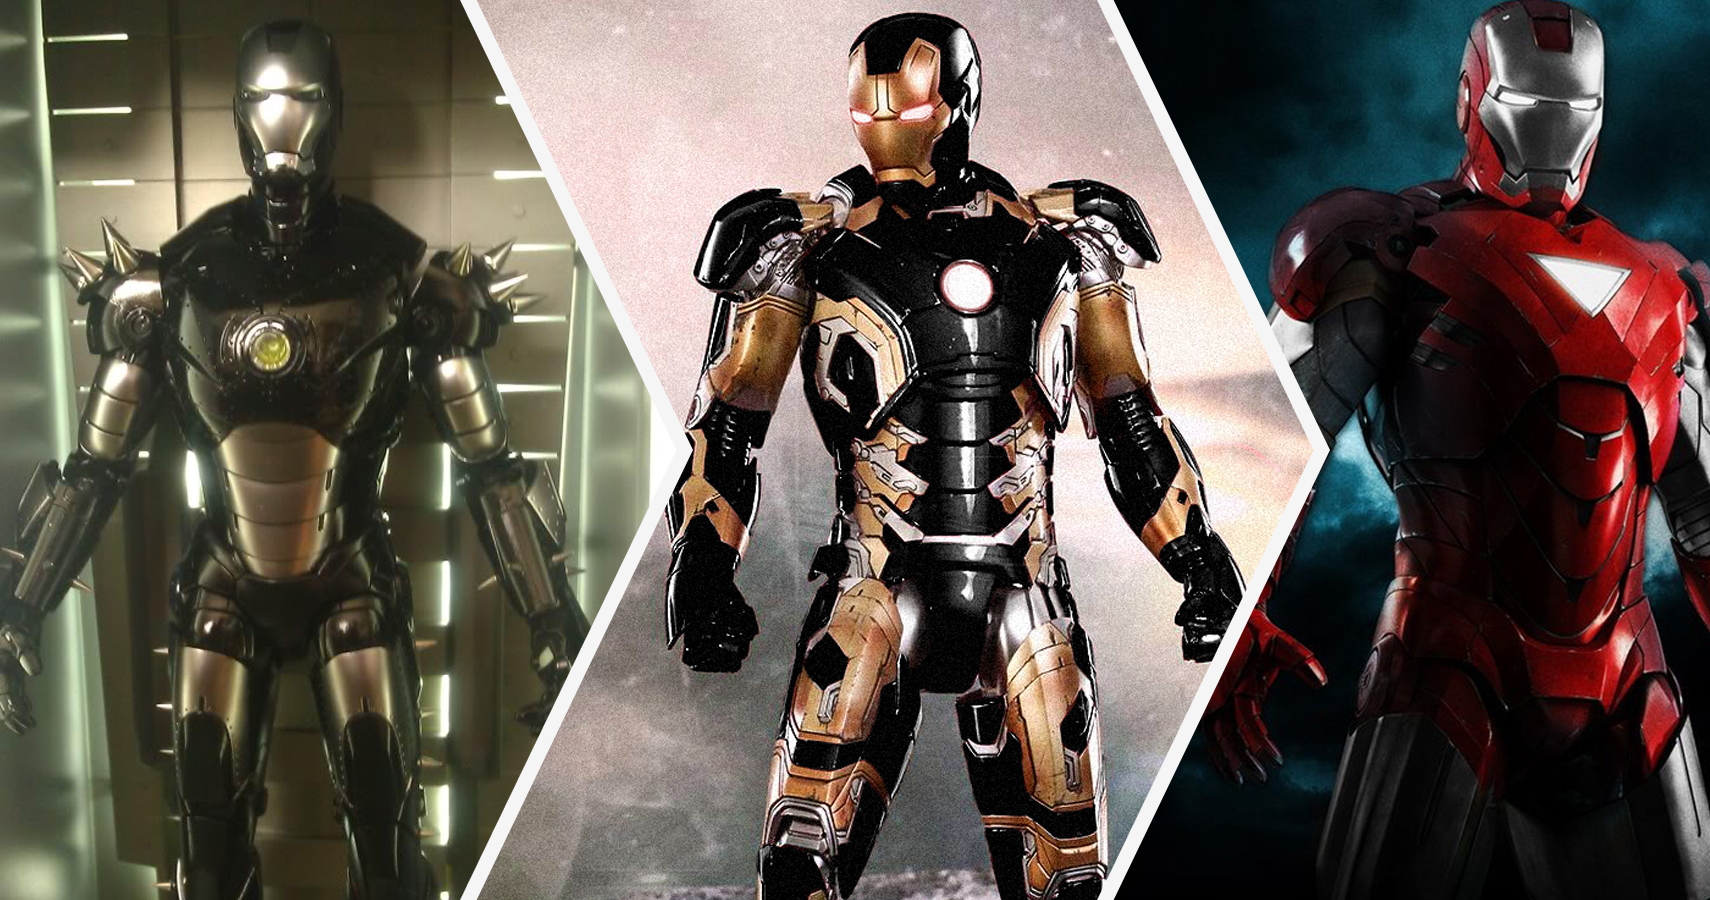 Iron Man Armors We Want And Dont Want To See On The Big Screen